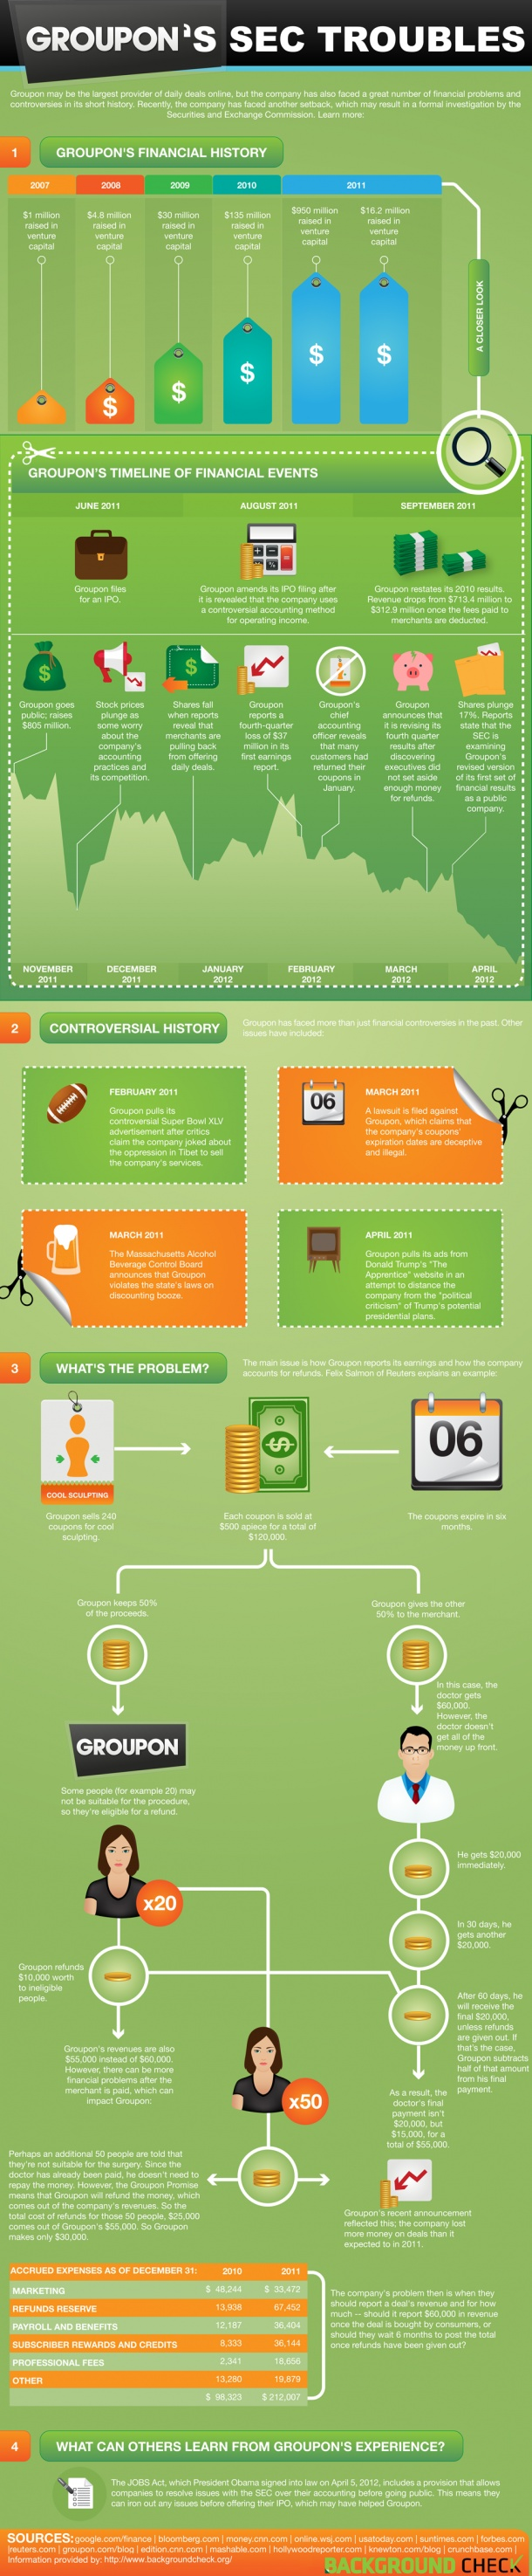 Groupon's SEC Troubles  @Emily BenderRisky Business, Groupon, Social Media, Awesome Pin, Trouble Infographic, Android Apps, Info Graphics, Infographics, Business Infographic